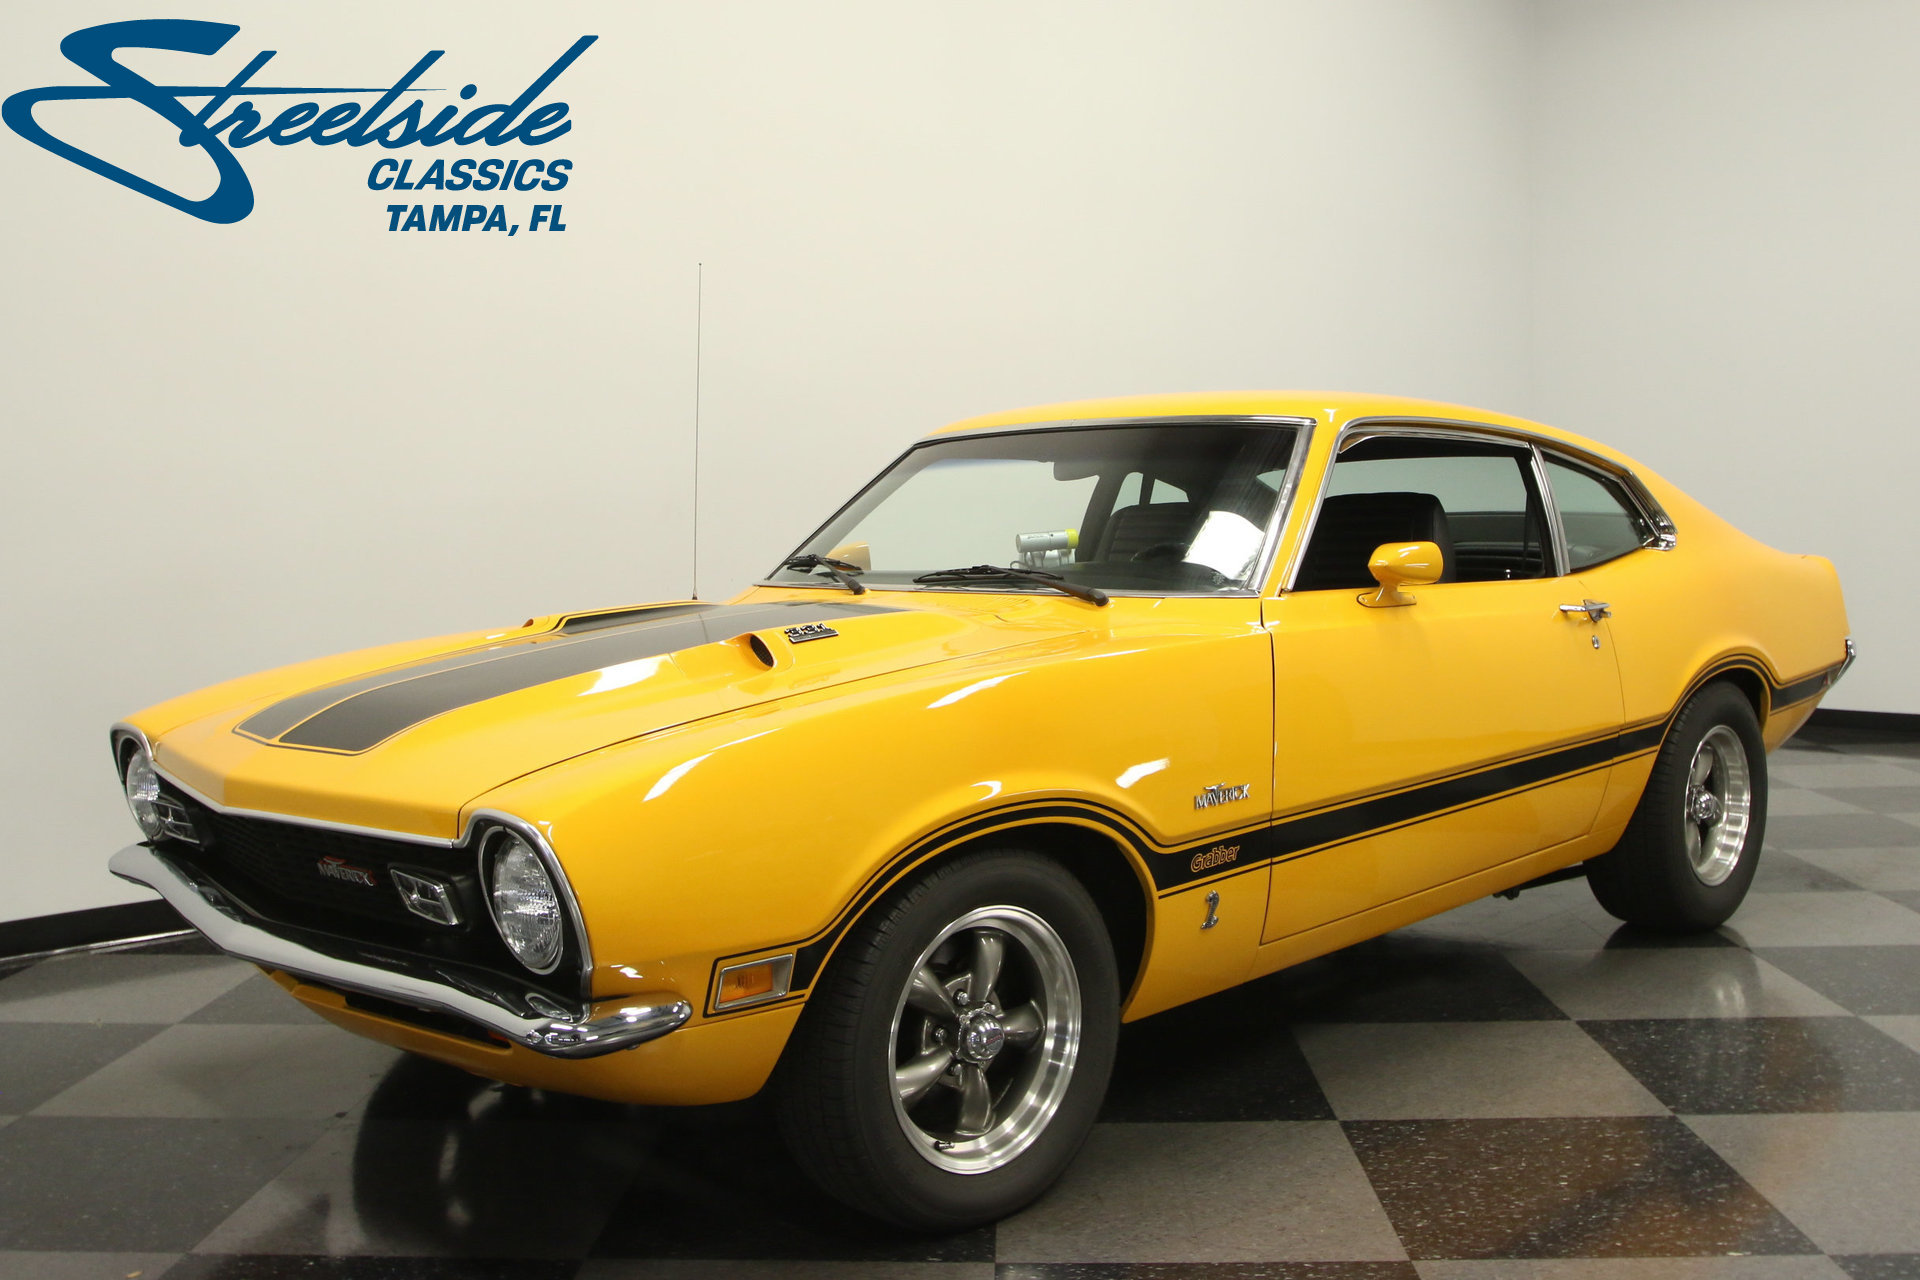 Chevy Dealers Tampa >> 1972 Ford Maverick | Streetside Classics - The Nation's Trusted Classic Car Consignment Dealer